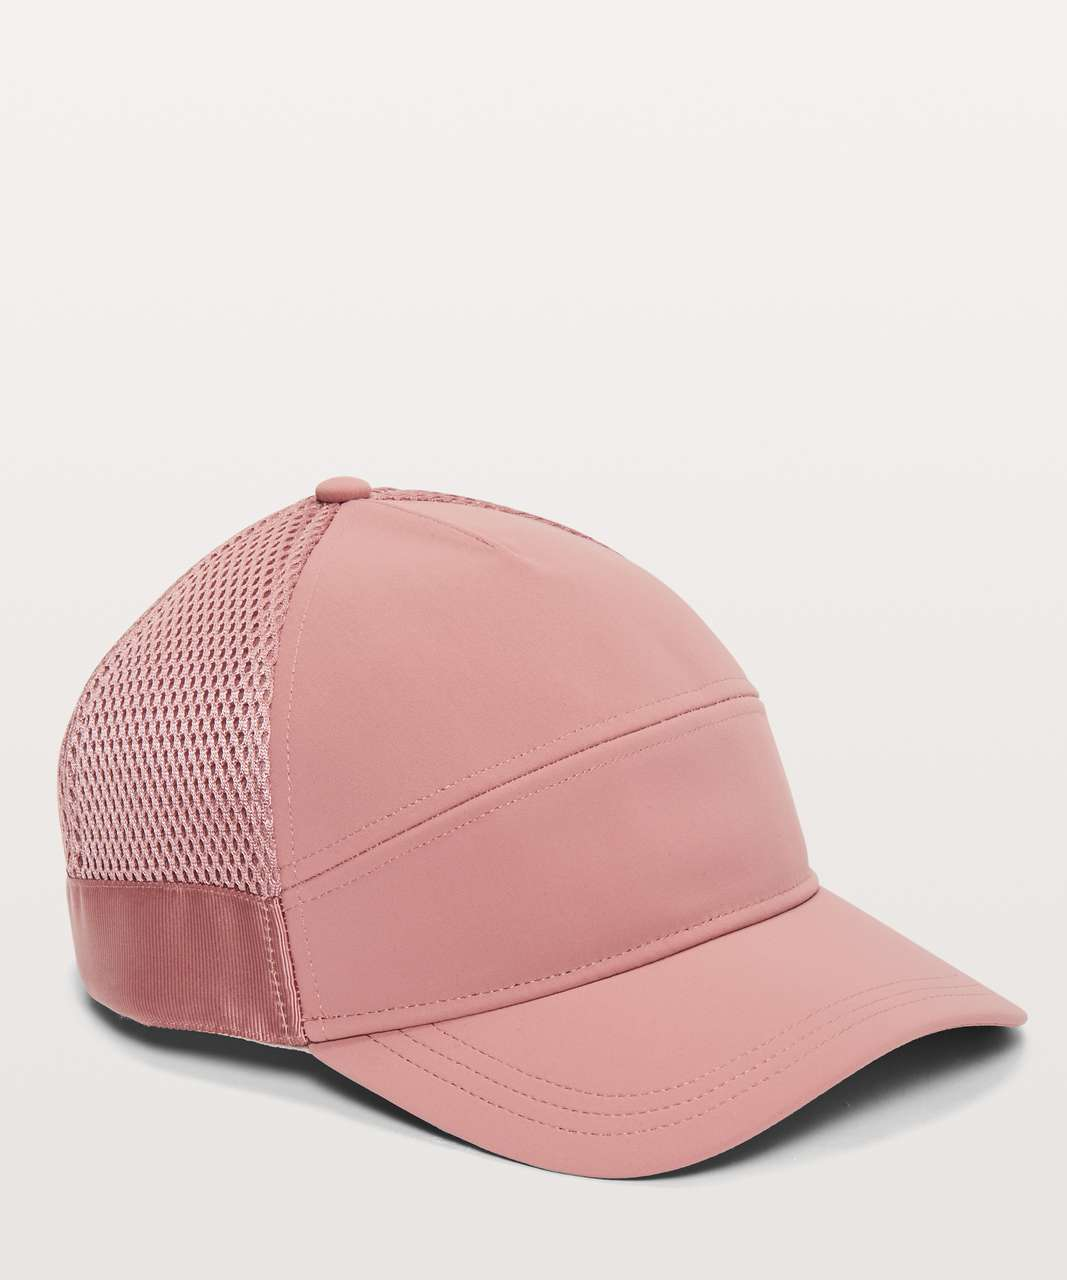 Lululemon Dash & Splash Cap II - Quicksand